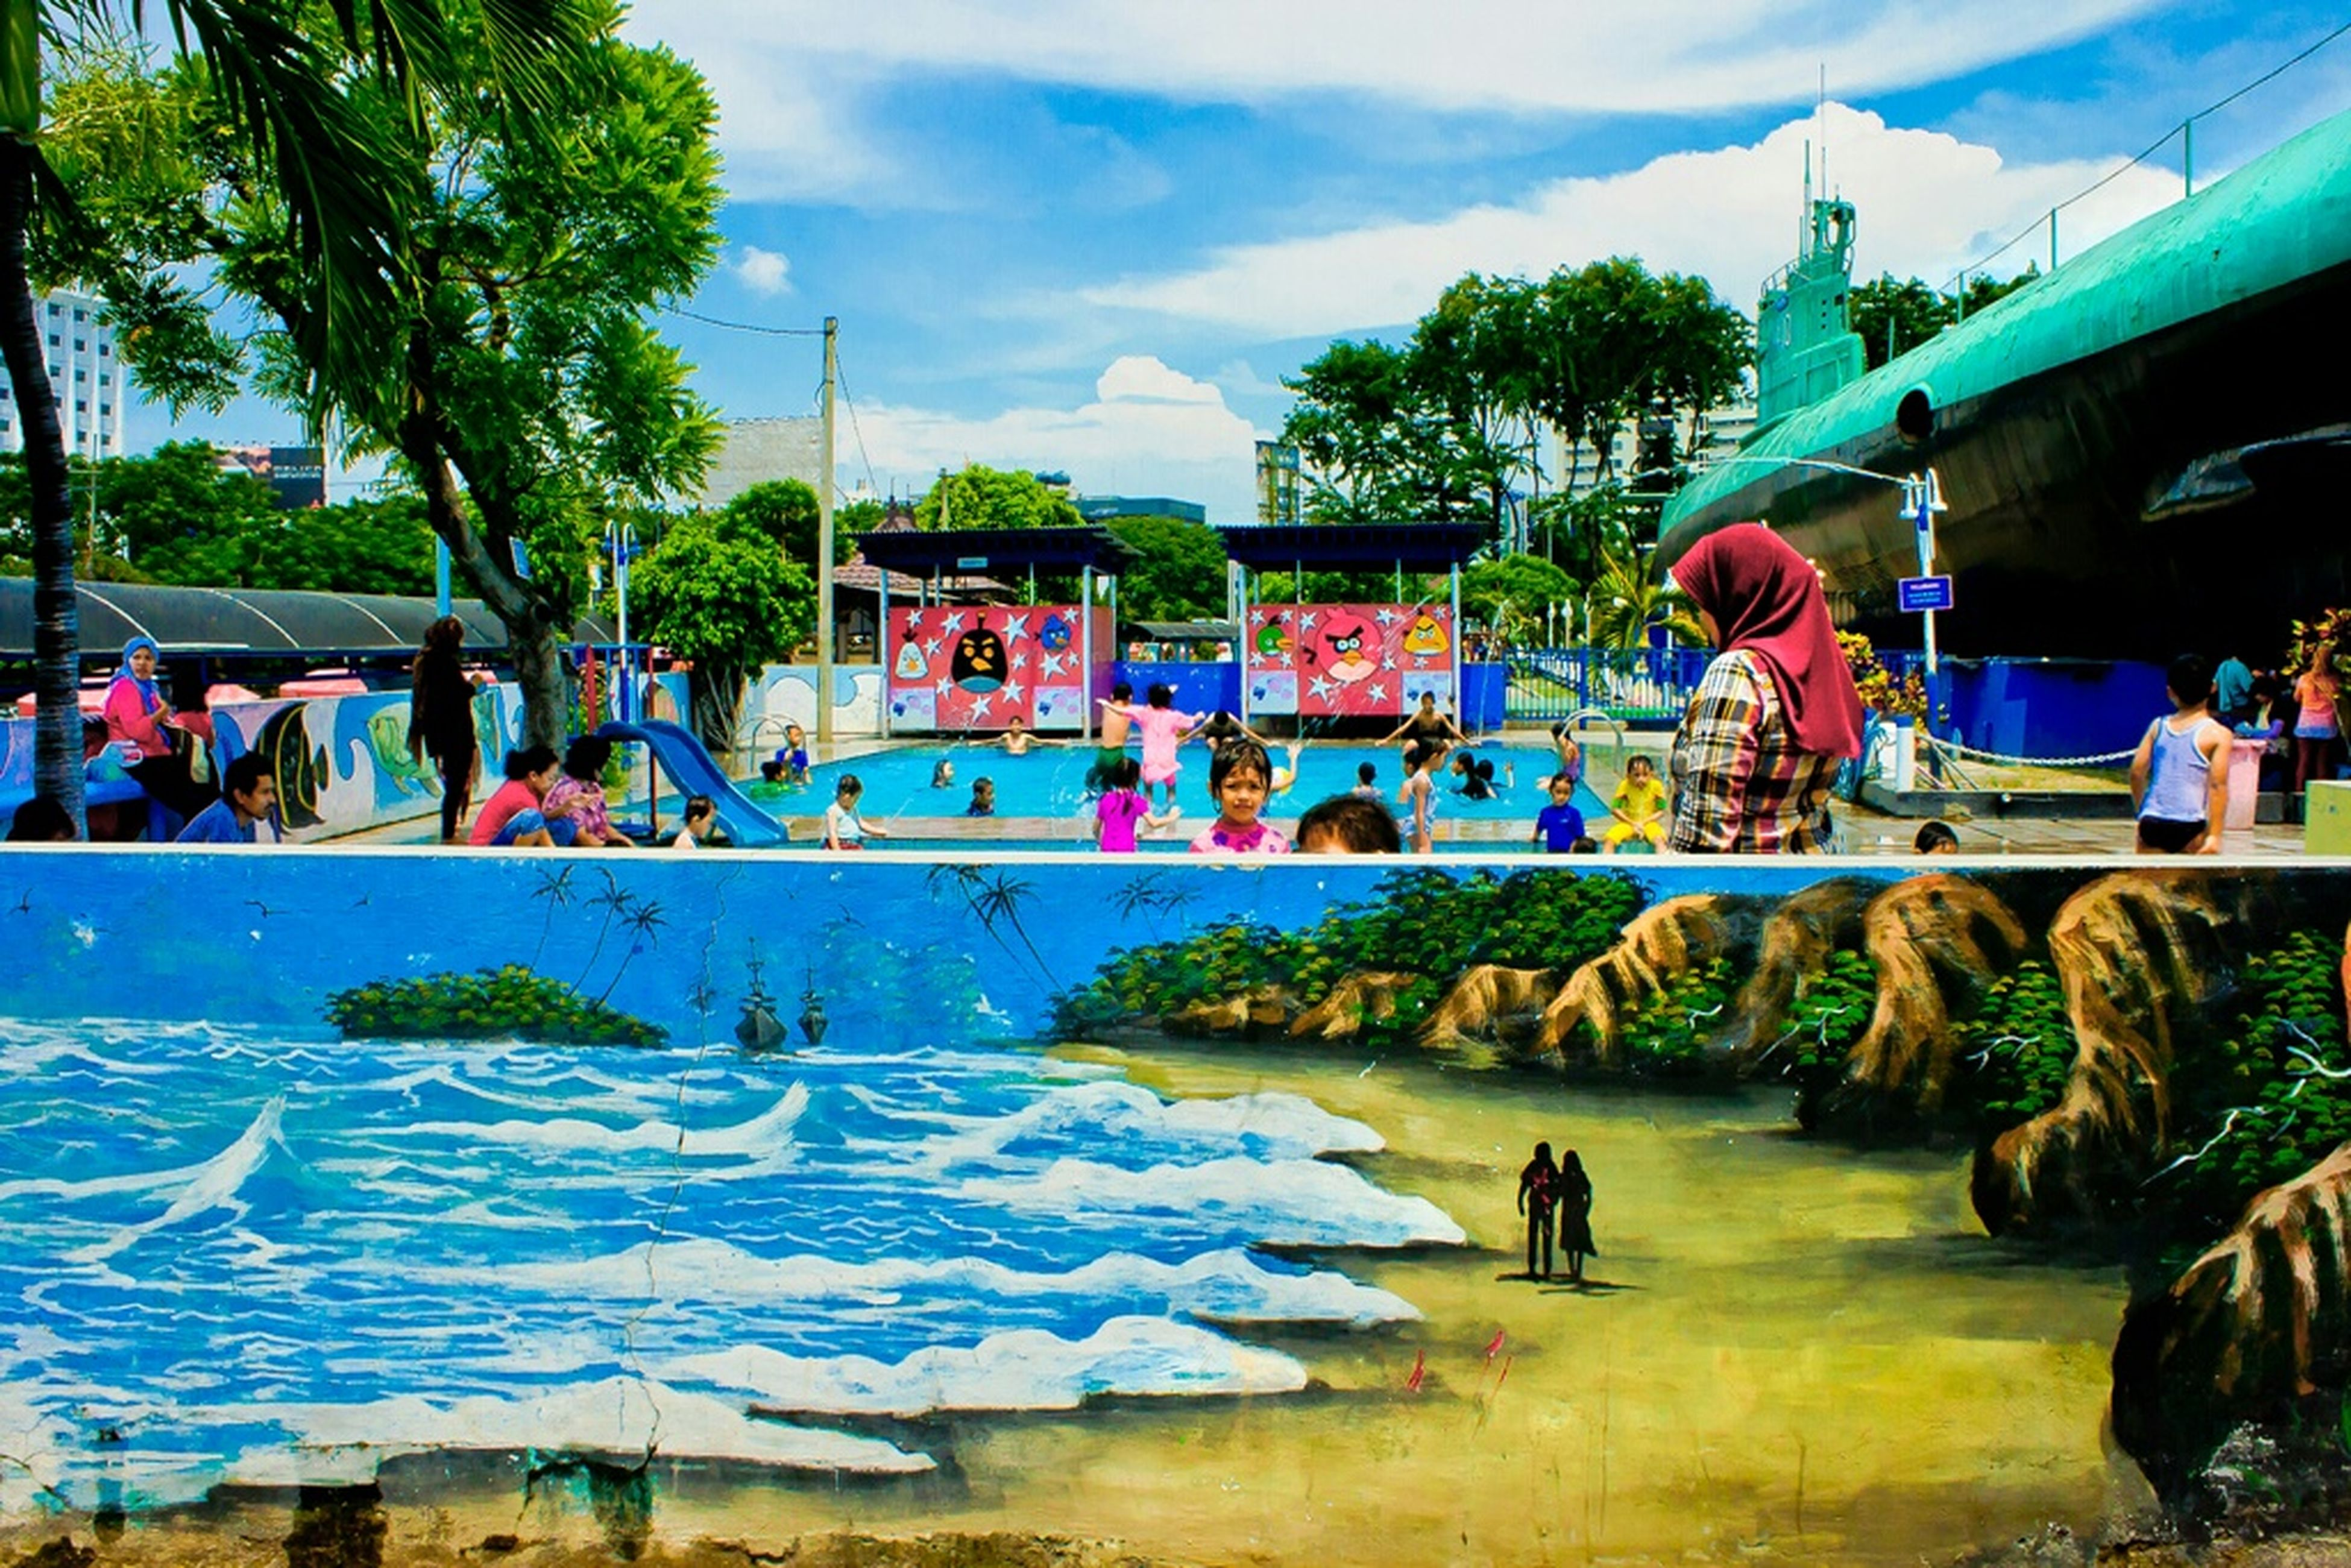 water, lifestyles, sky, leisure activity, built structure, architecture, large group of people, men, cloud - sky, person, building exterior, tree, swimming pool, fountain, tourist, enjoyment, travel, cloud, incidental people